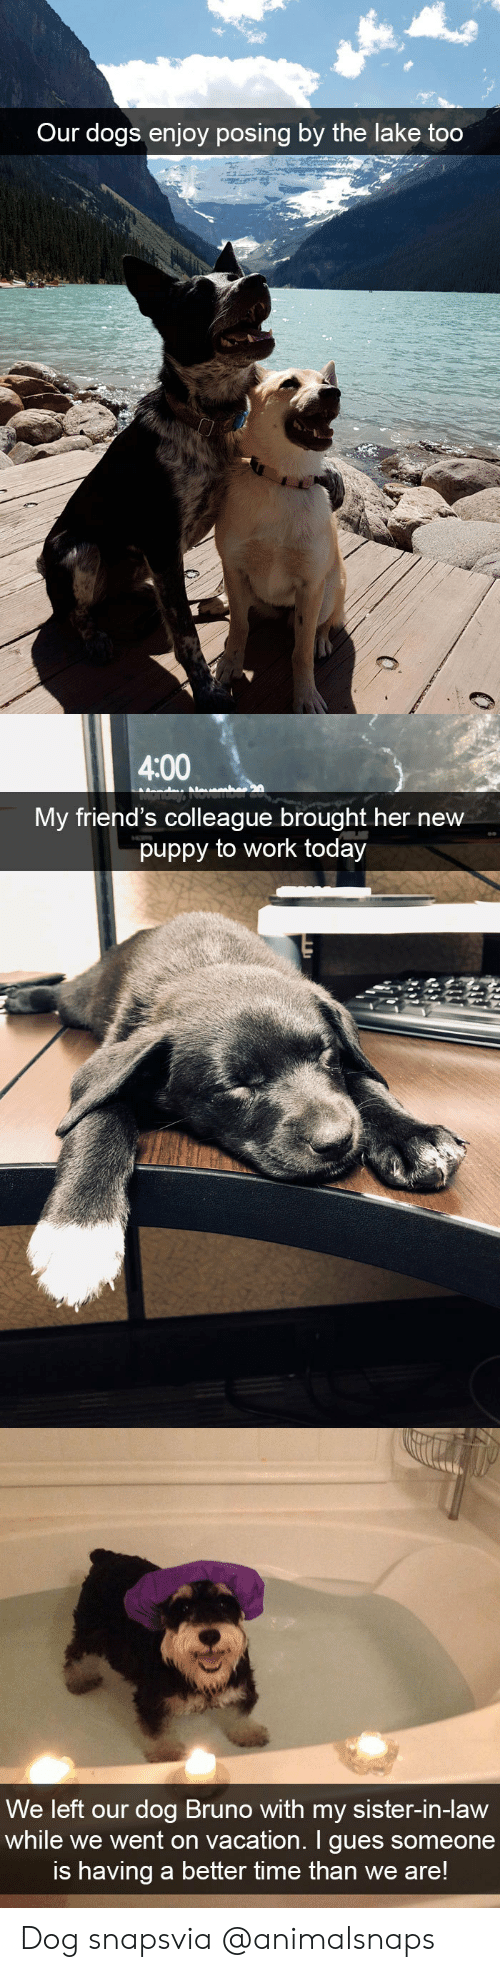 Dogs, Friends, and Target: Our dogs enjoy posing by the lake too   4:00  My friend's colleague brought her new  puppy to work today   We left our dog Bruno with my sister-in-Haw  while we went on vacation. I gues someone  is having a better time than we are! Dog snapsvia @animalsnaps​